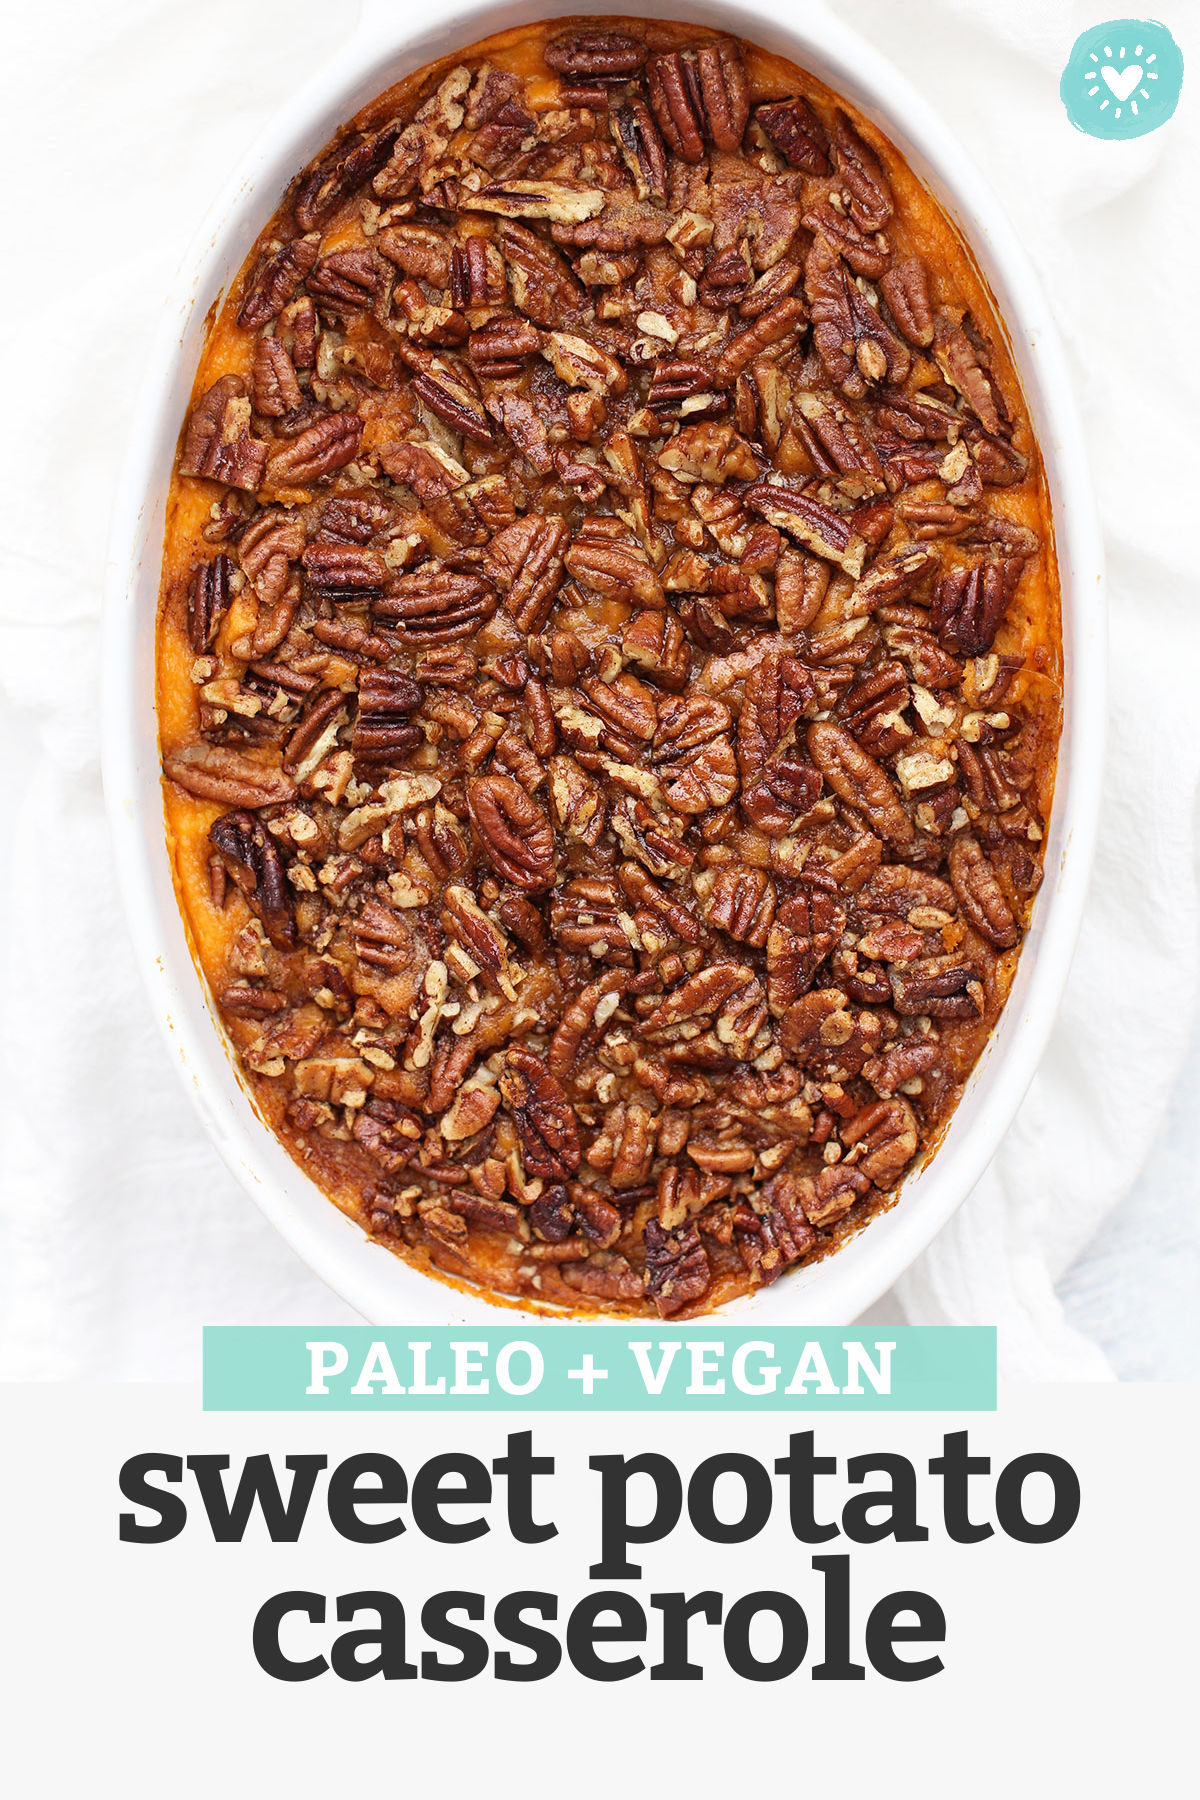 Paleo (or Vegan!) Sweet Potato Casserole - Gluten free, naturally sweetened, and totally delicious! // Vegan sweet potato casserole recipe // paleo sweet potato casserole recipe // dairy free sweet potato casserole recipe // gluten free sweet potato casserole recipe